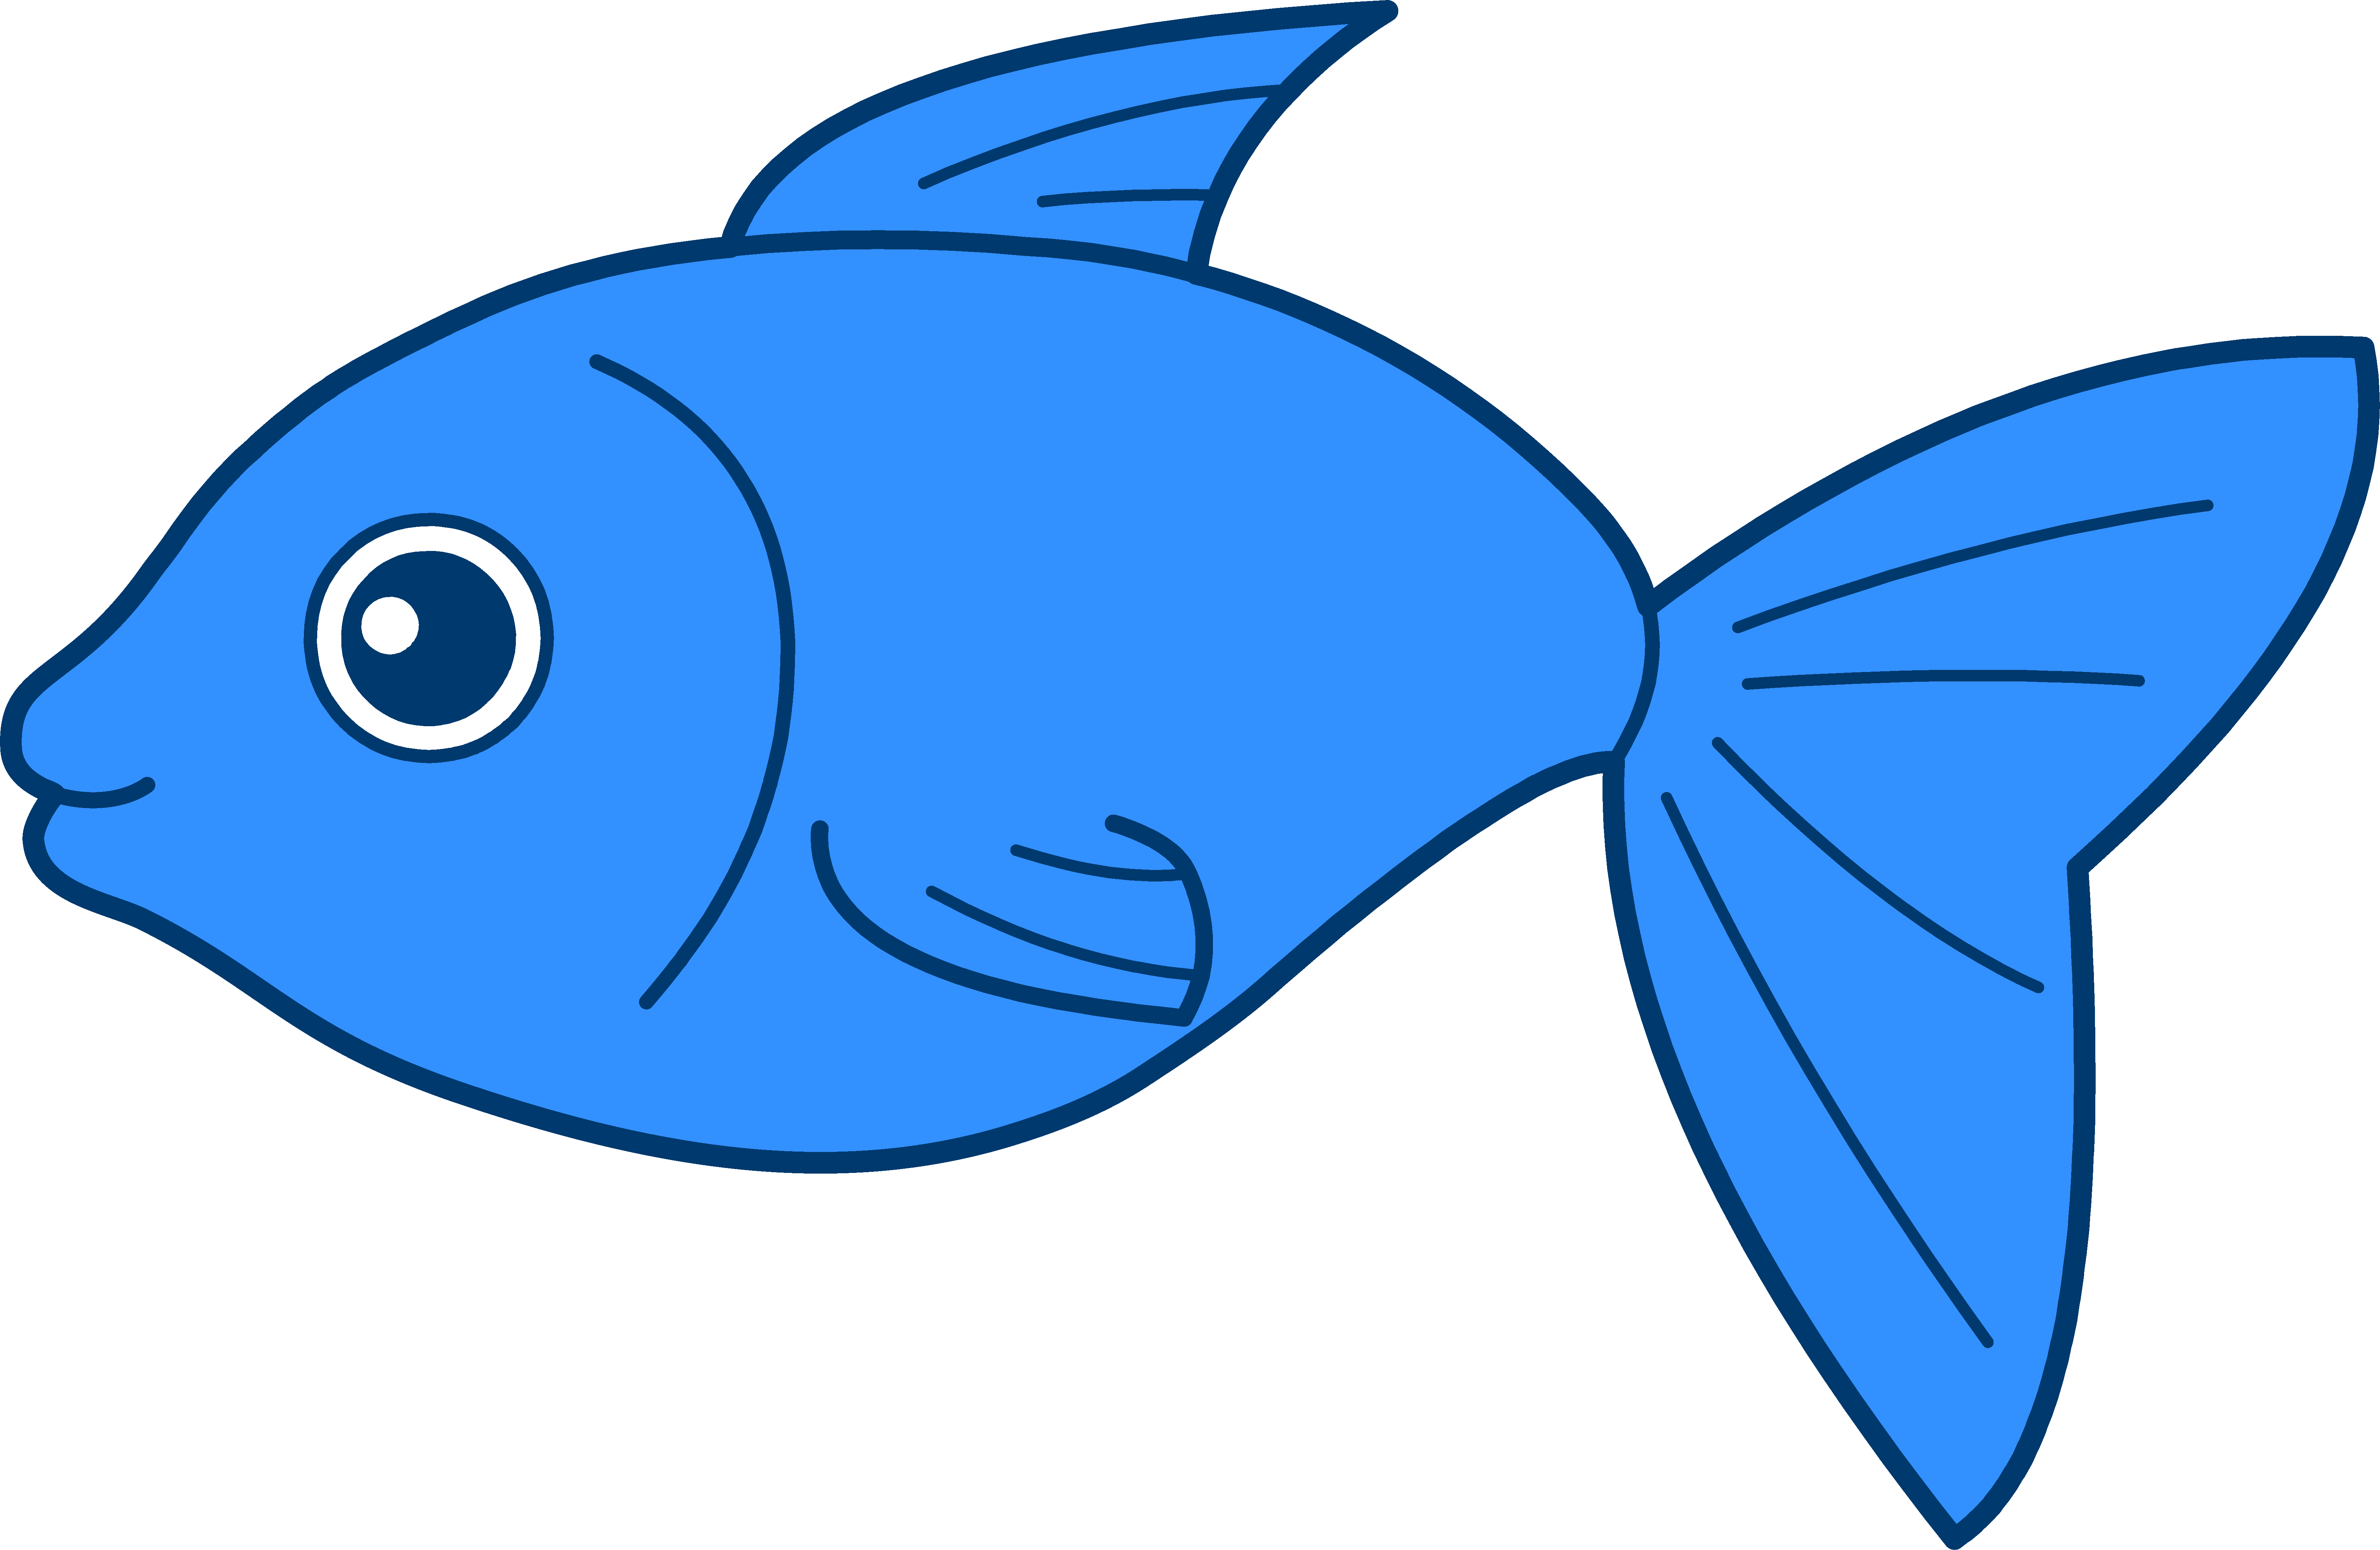 Clipart Fish Images | Clipart Panda - Free Clipart Images